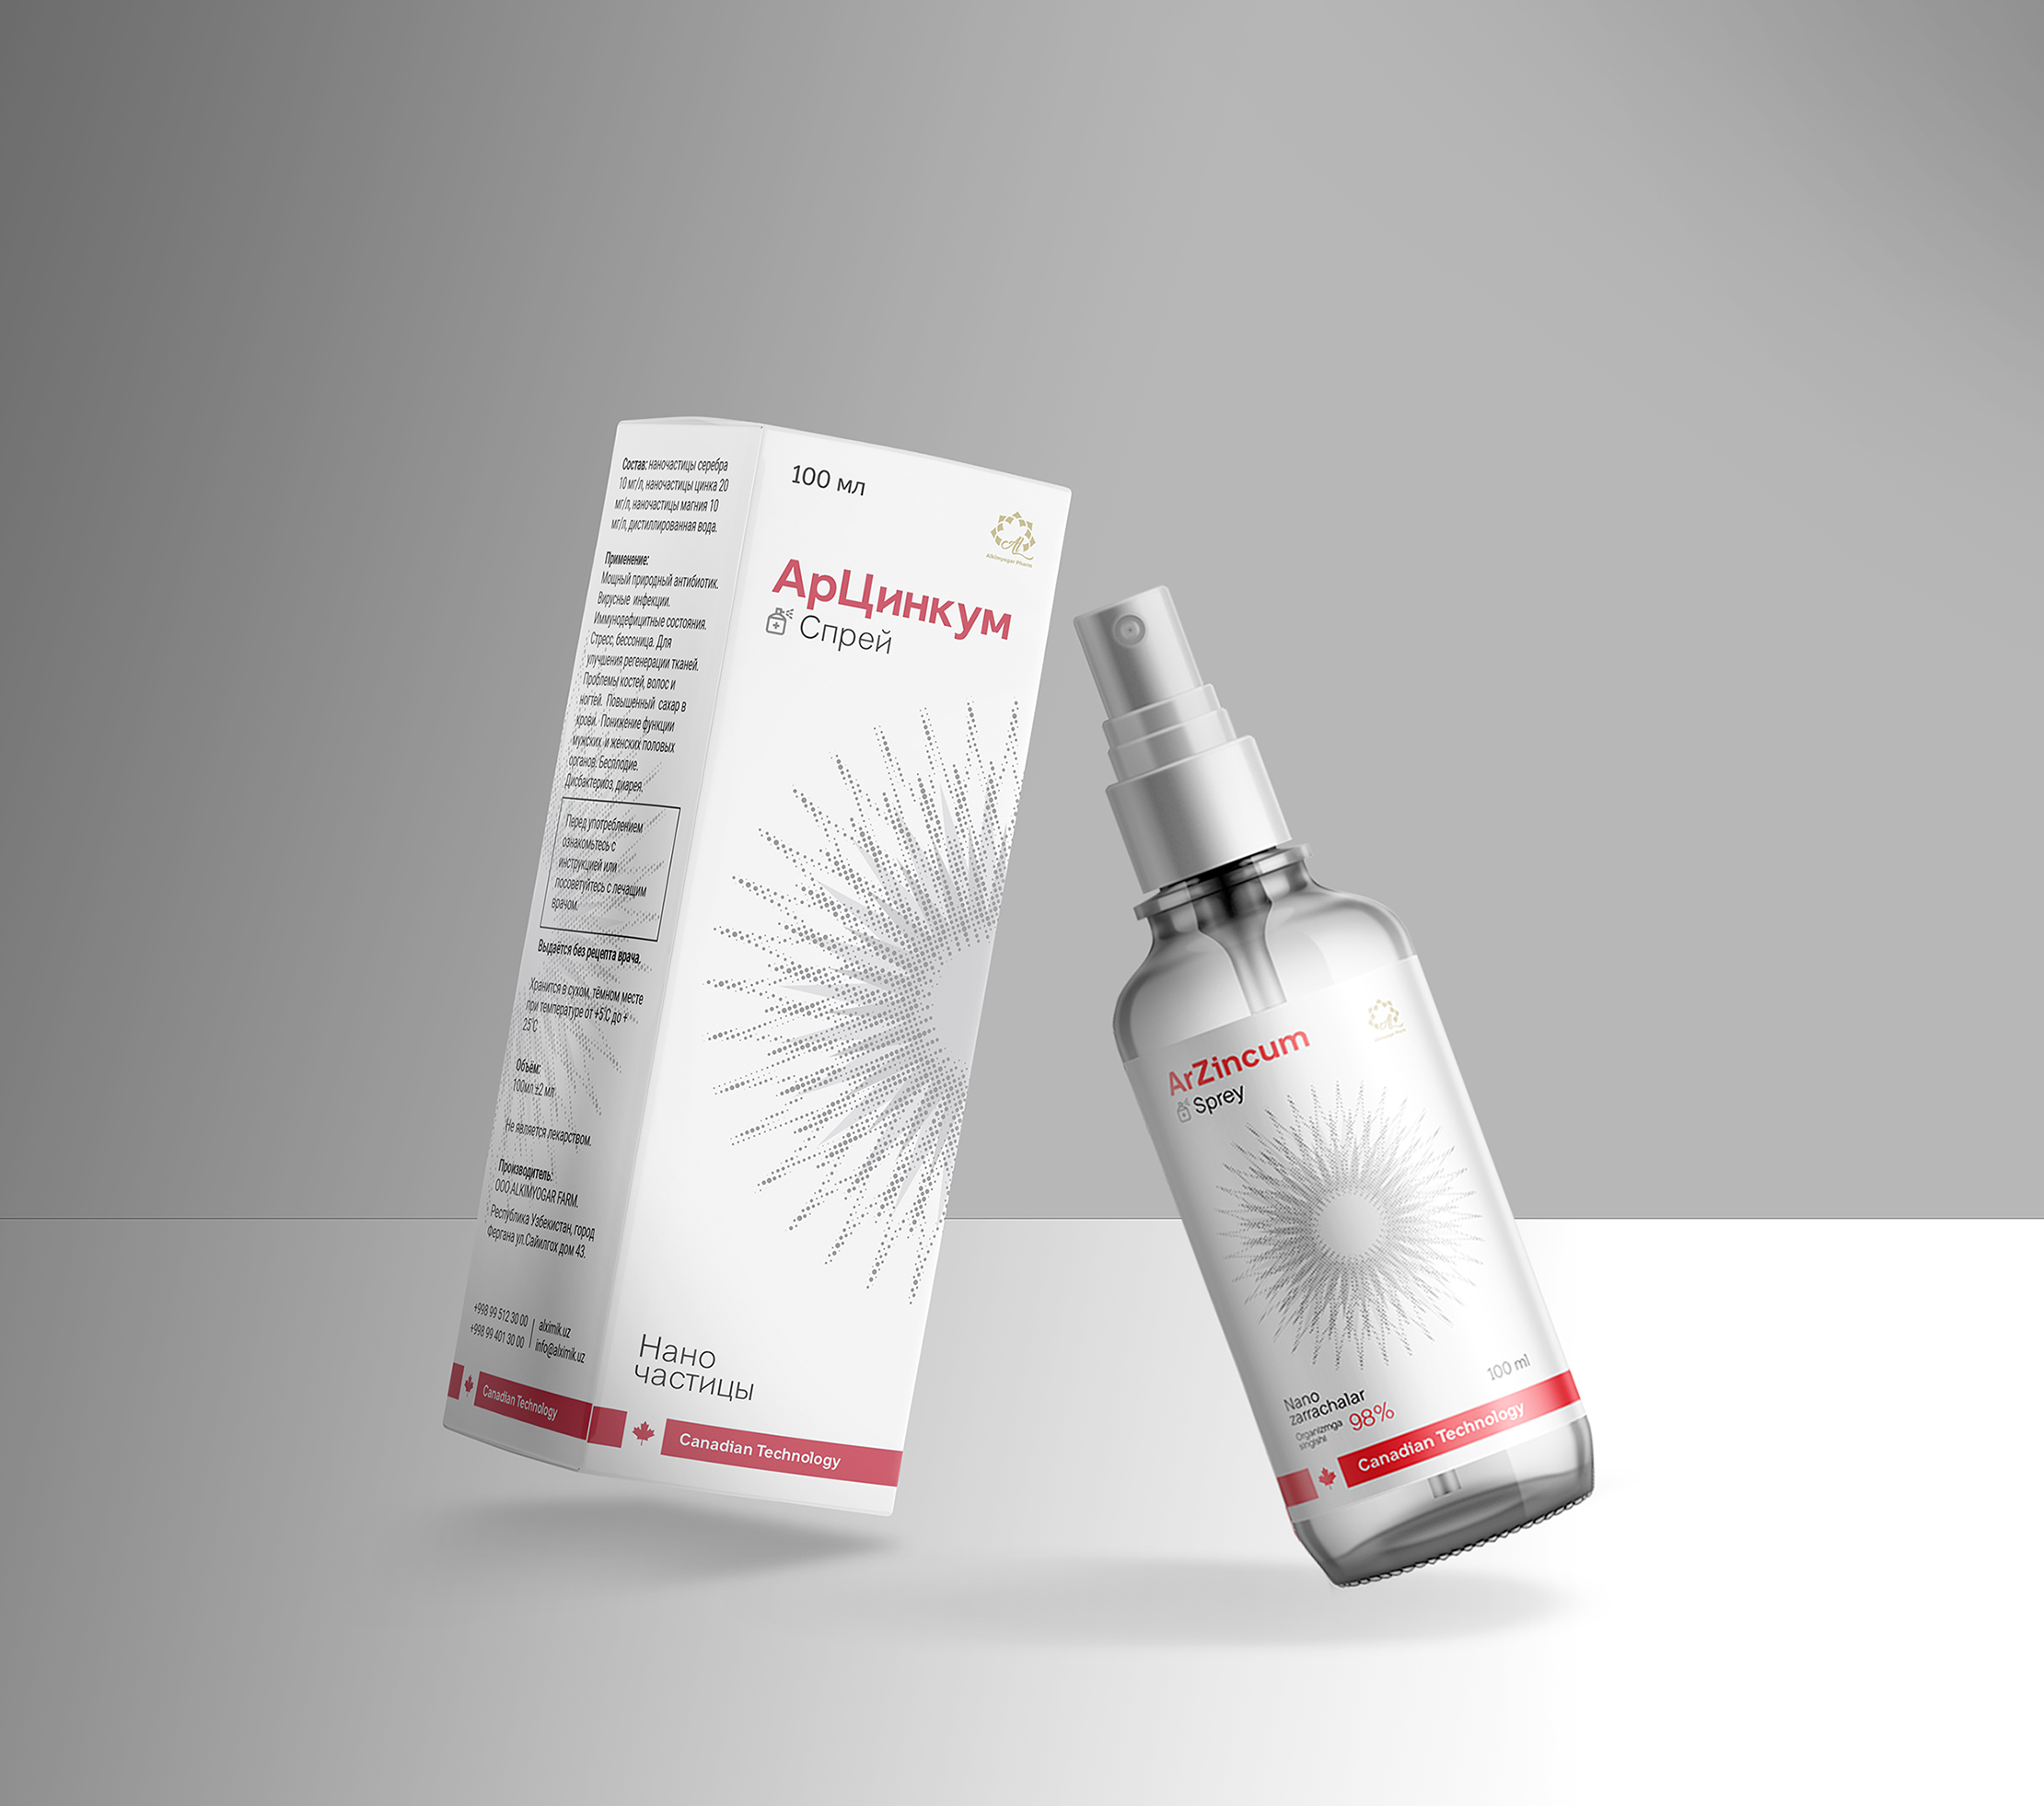 Modern Concept For ArZincum Syrup And Spray From Minim Design Agency